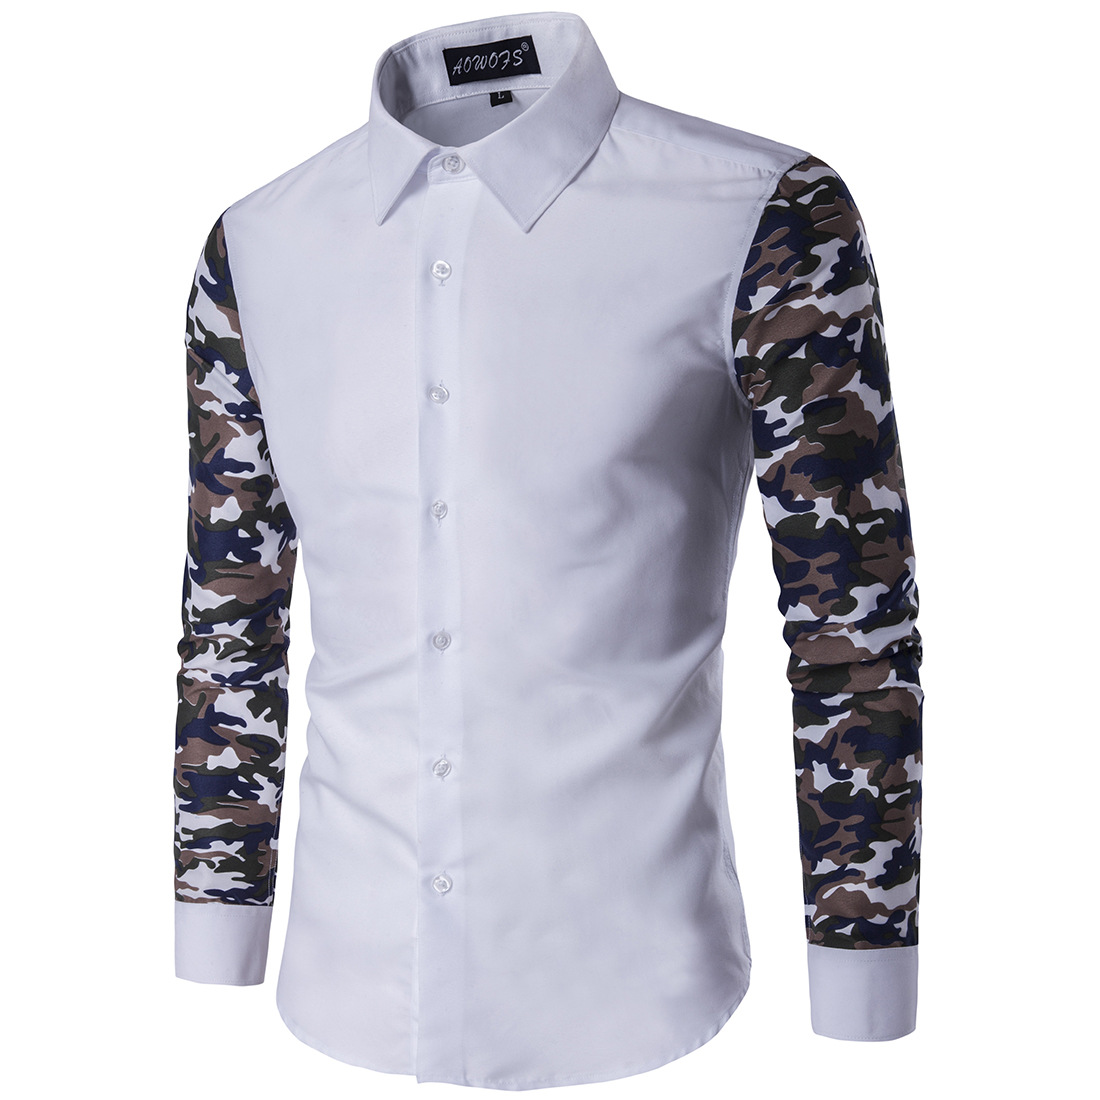 Aowofs Fashion MEN'S Wear Camouflage Sleeve Long-sleeved Shirt Slim Fit Europe And America Catwalks MEN'S Shirt 2-Color Xd009